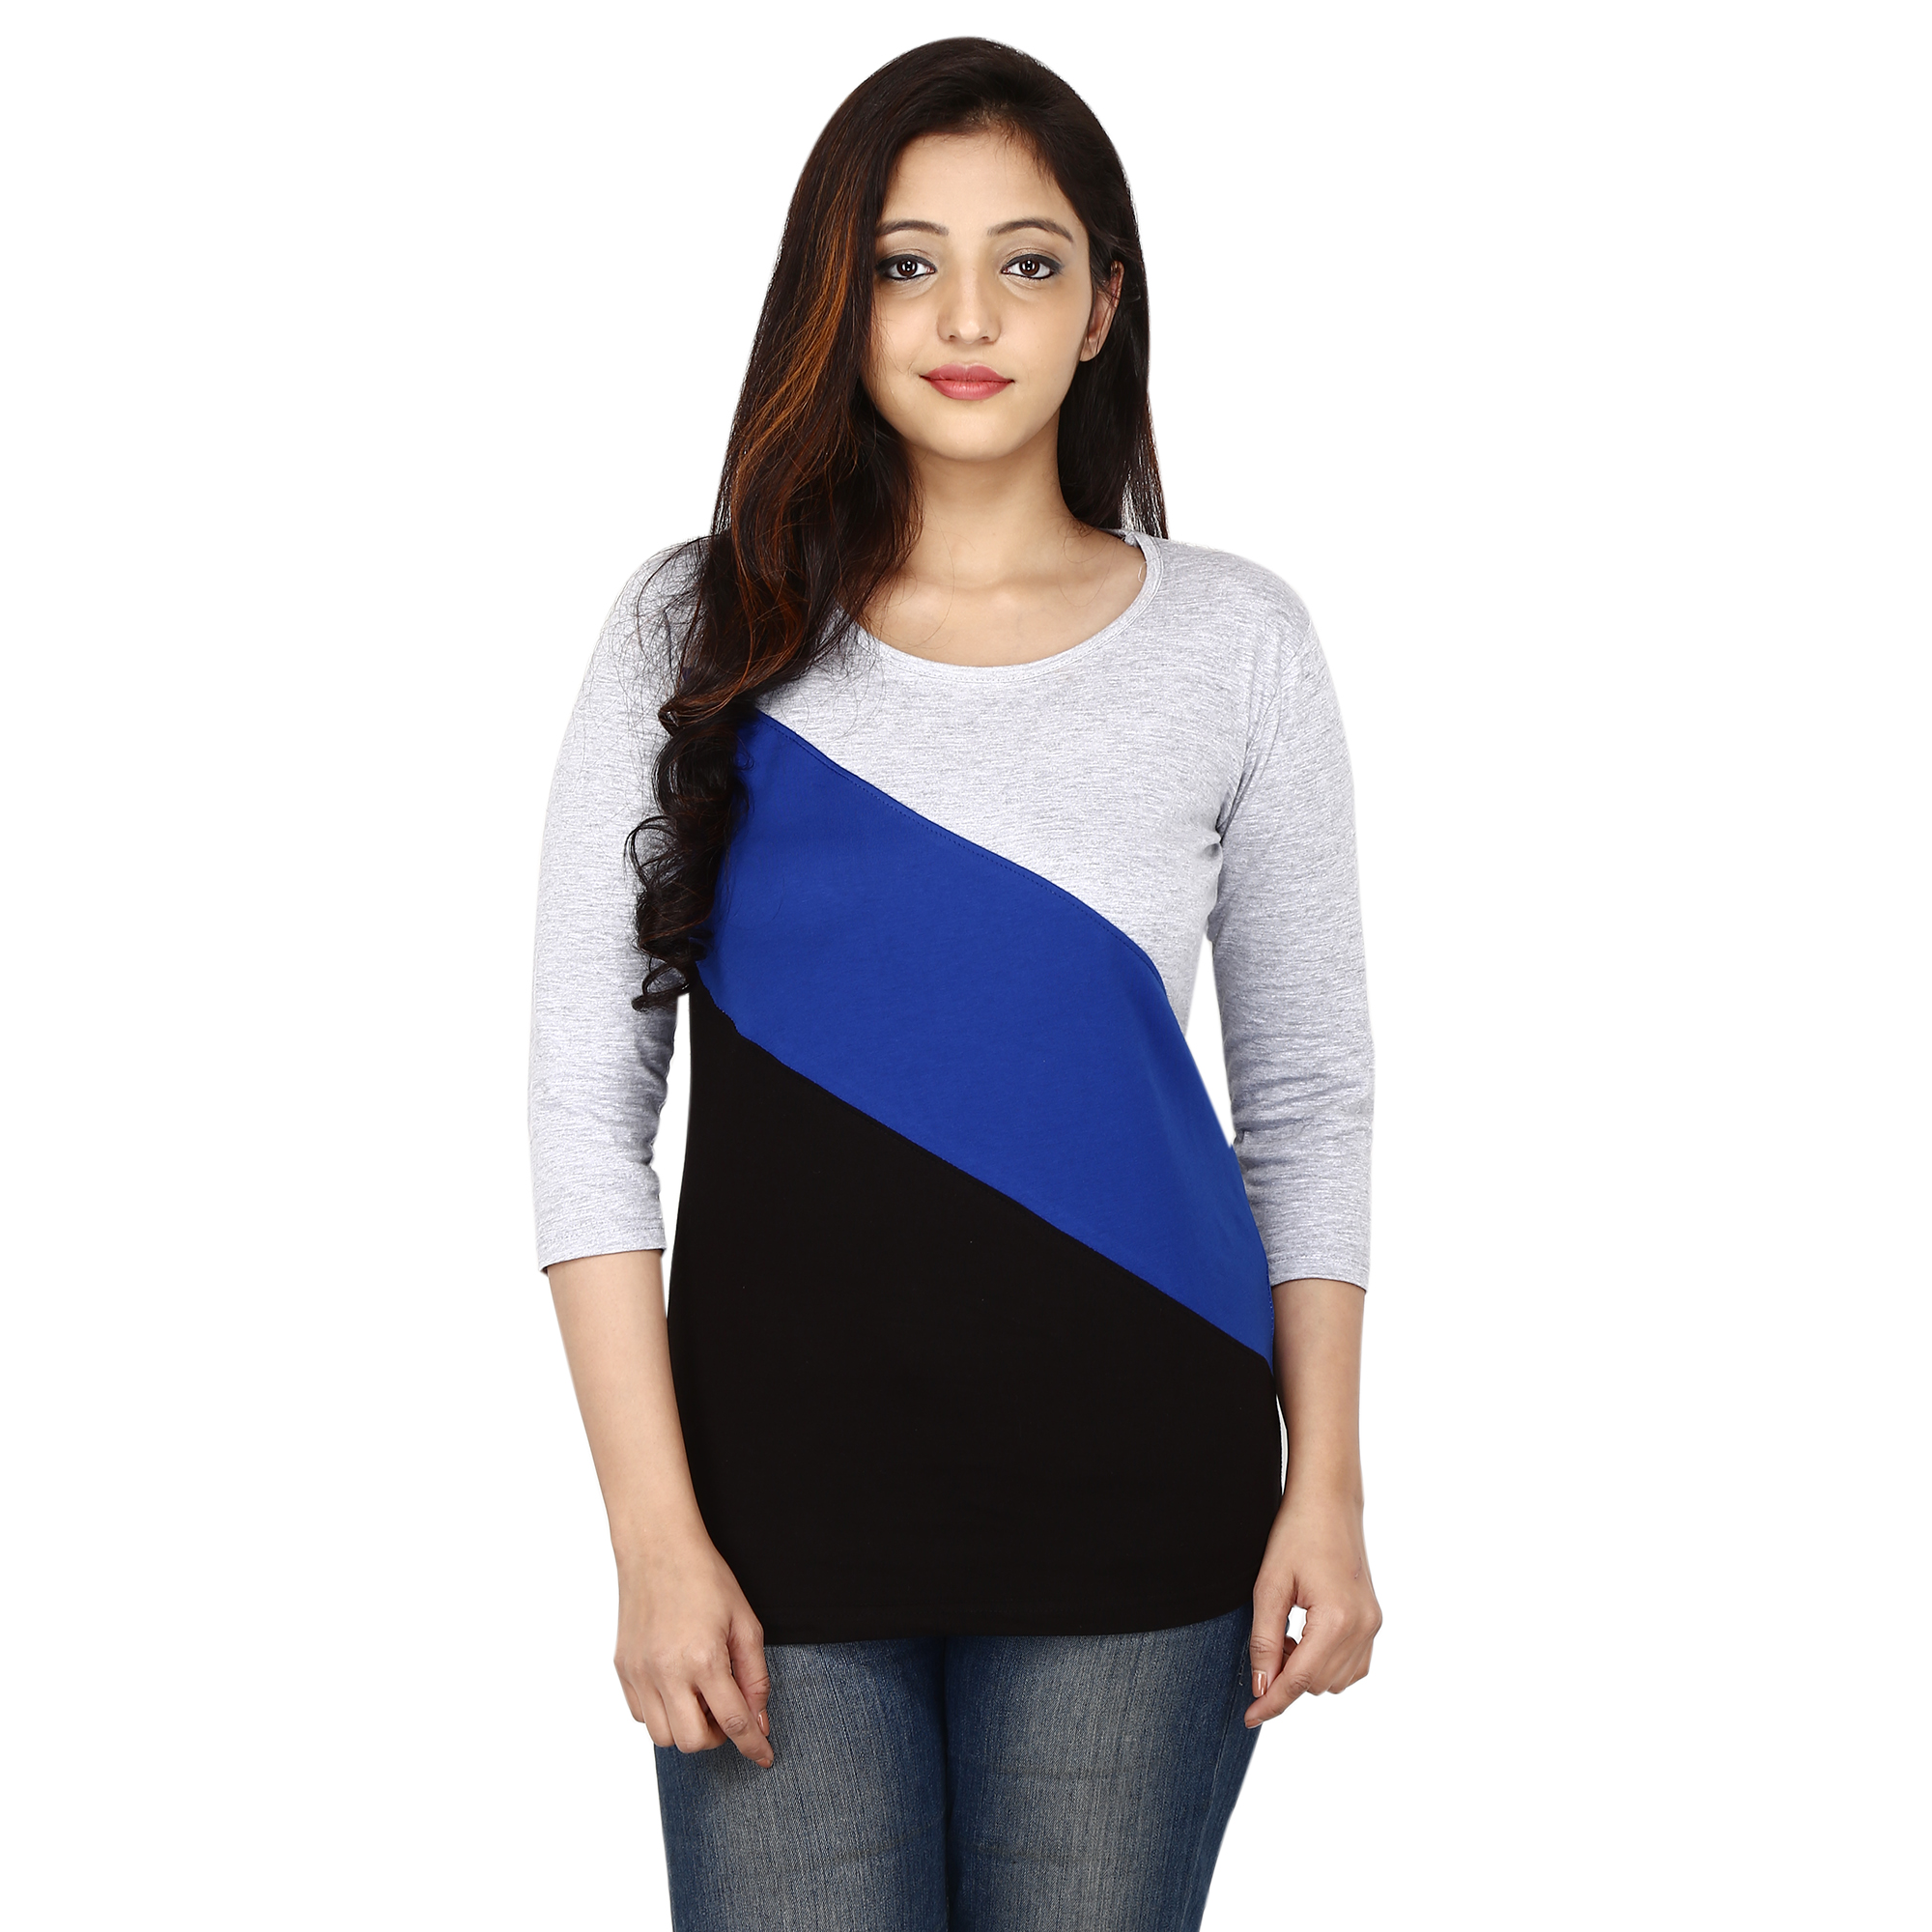 Romile Solid Women Round Neck Multicolor T Shirt